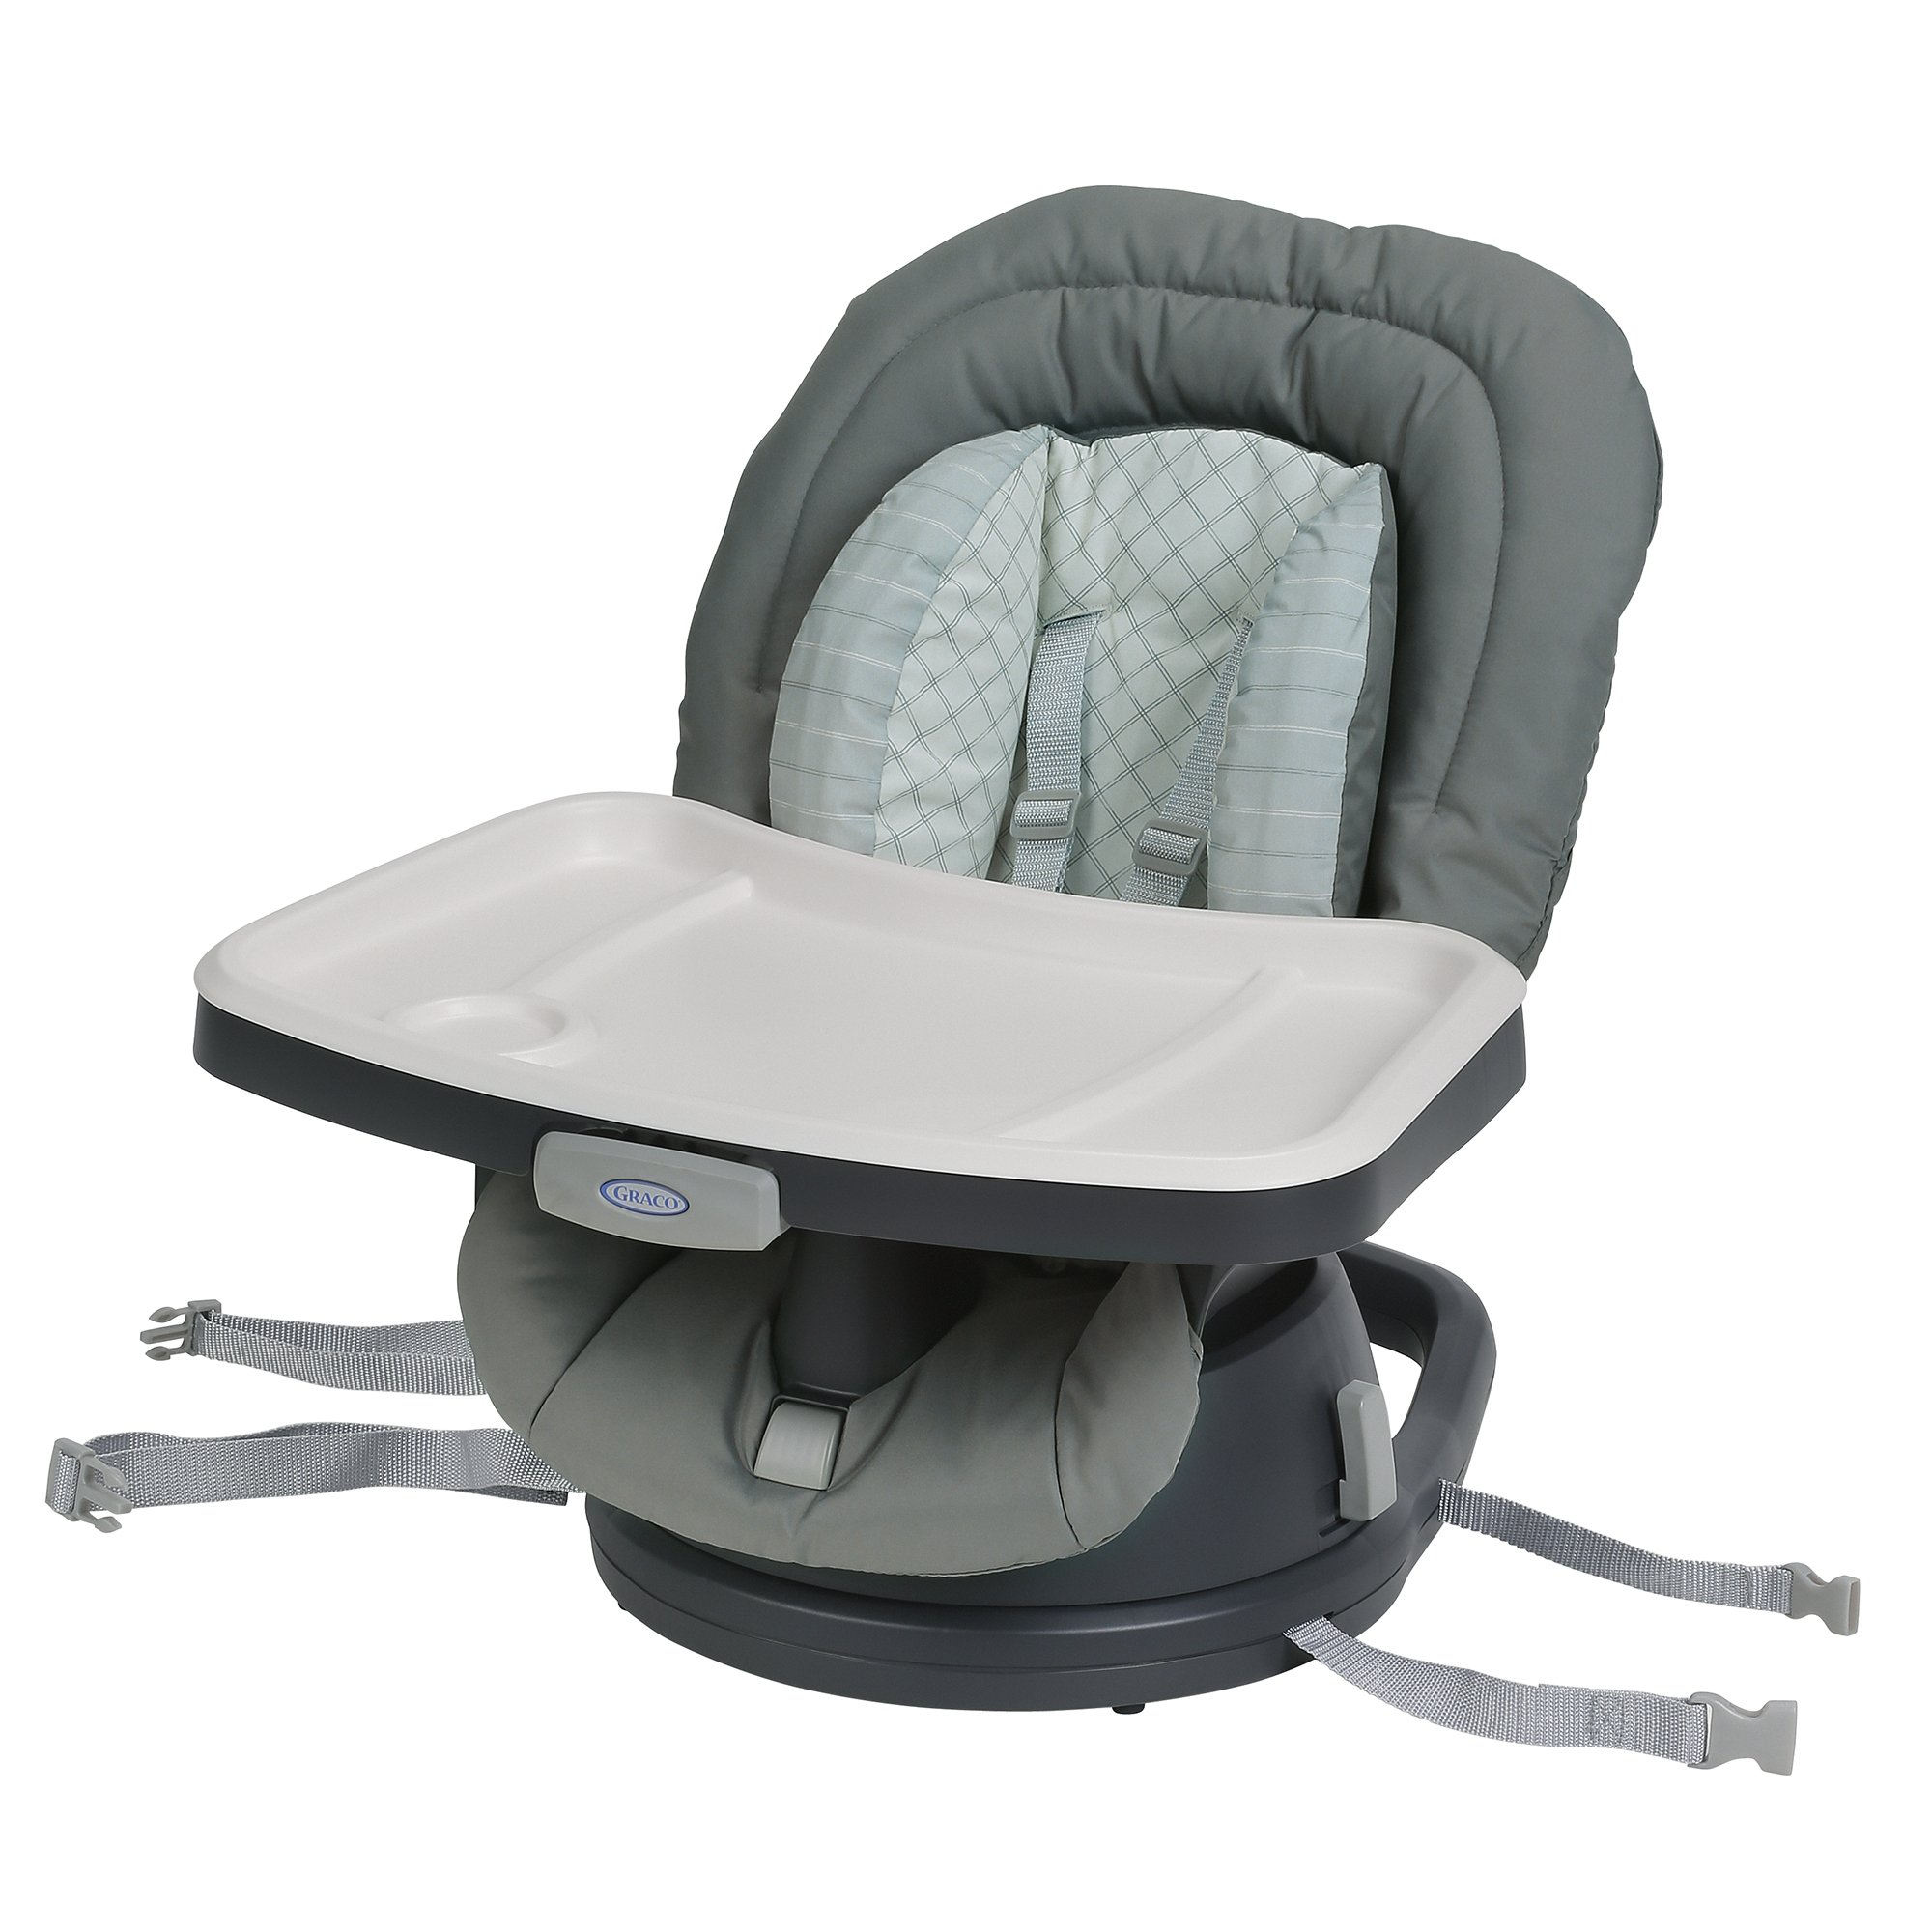 Graco Swivi Seat 3-in-1 Booster by Graco